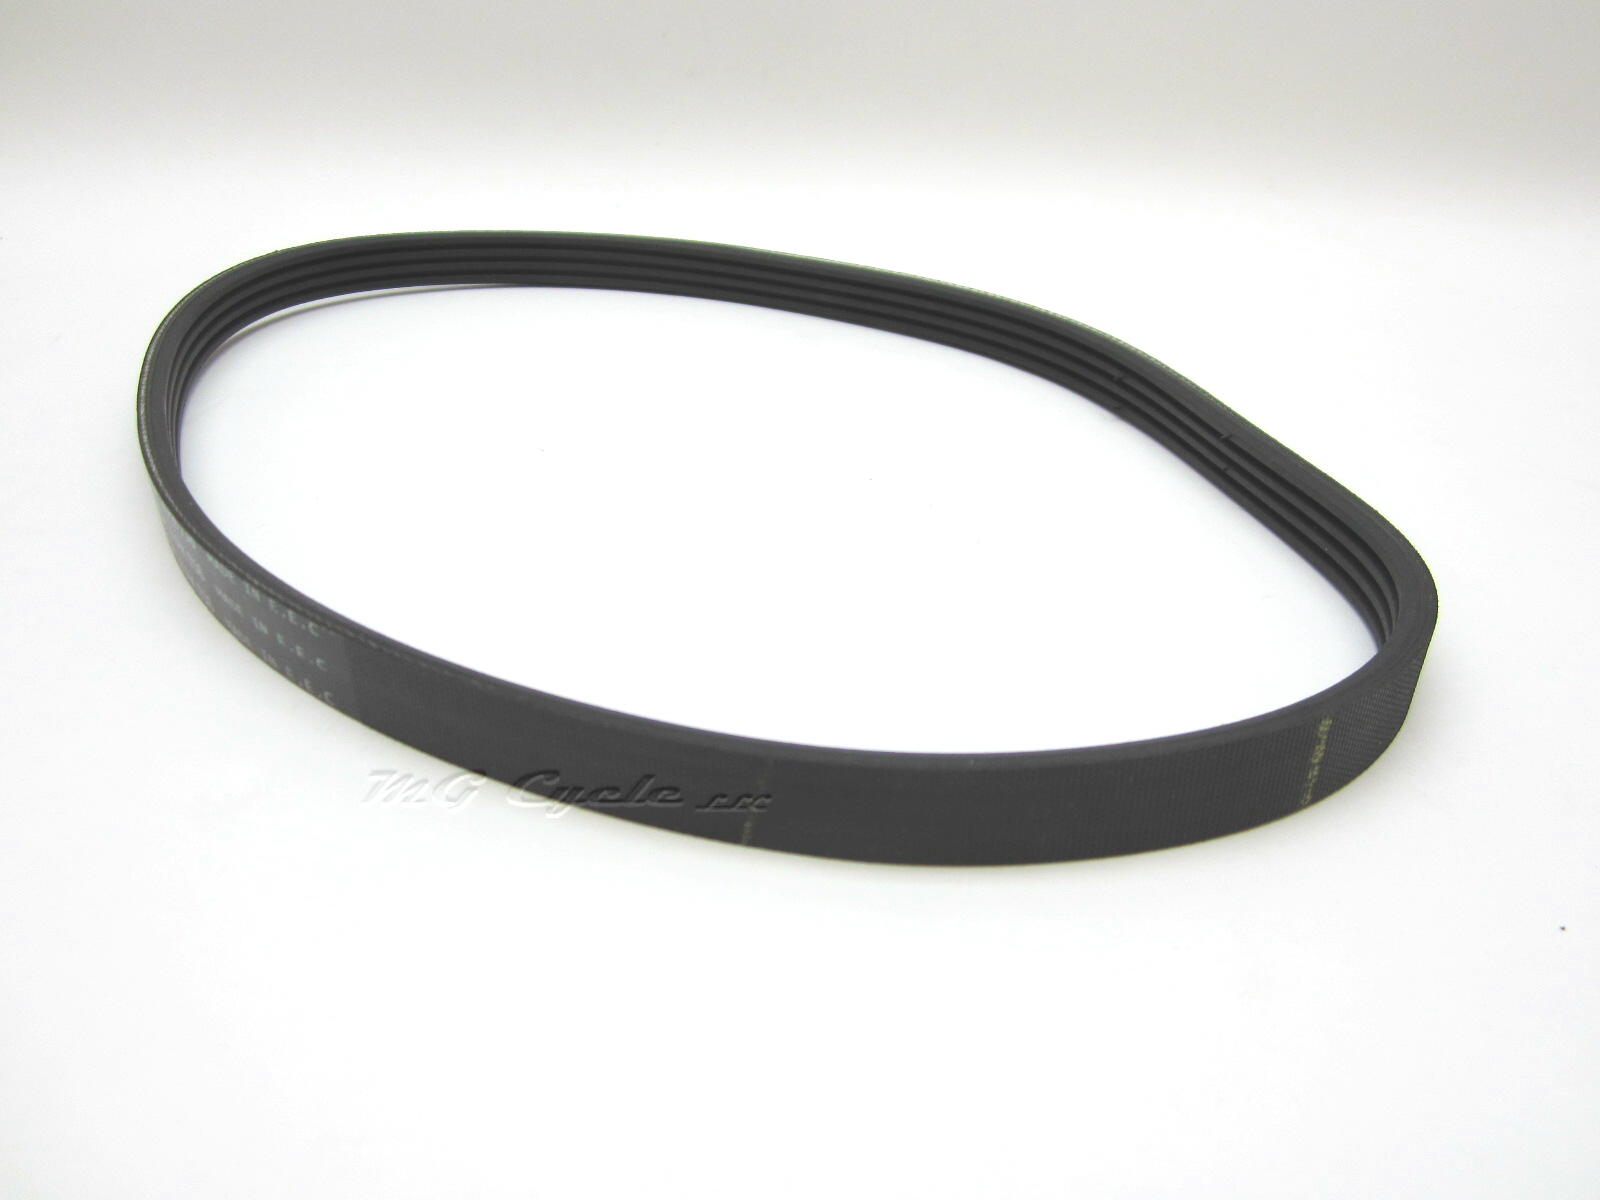 aftermarket alternator belt, Norge, Griso, Stelvio, Breva 1100s